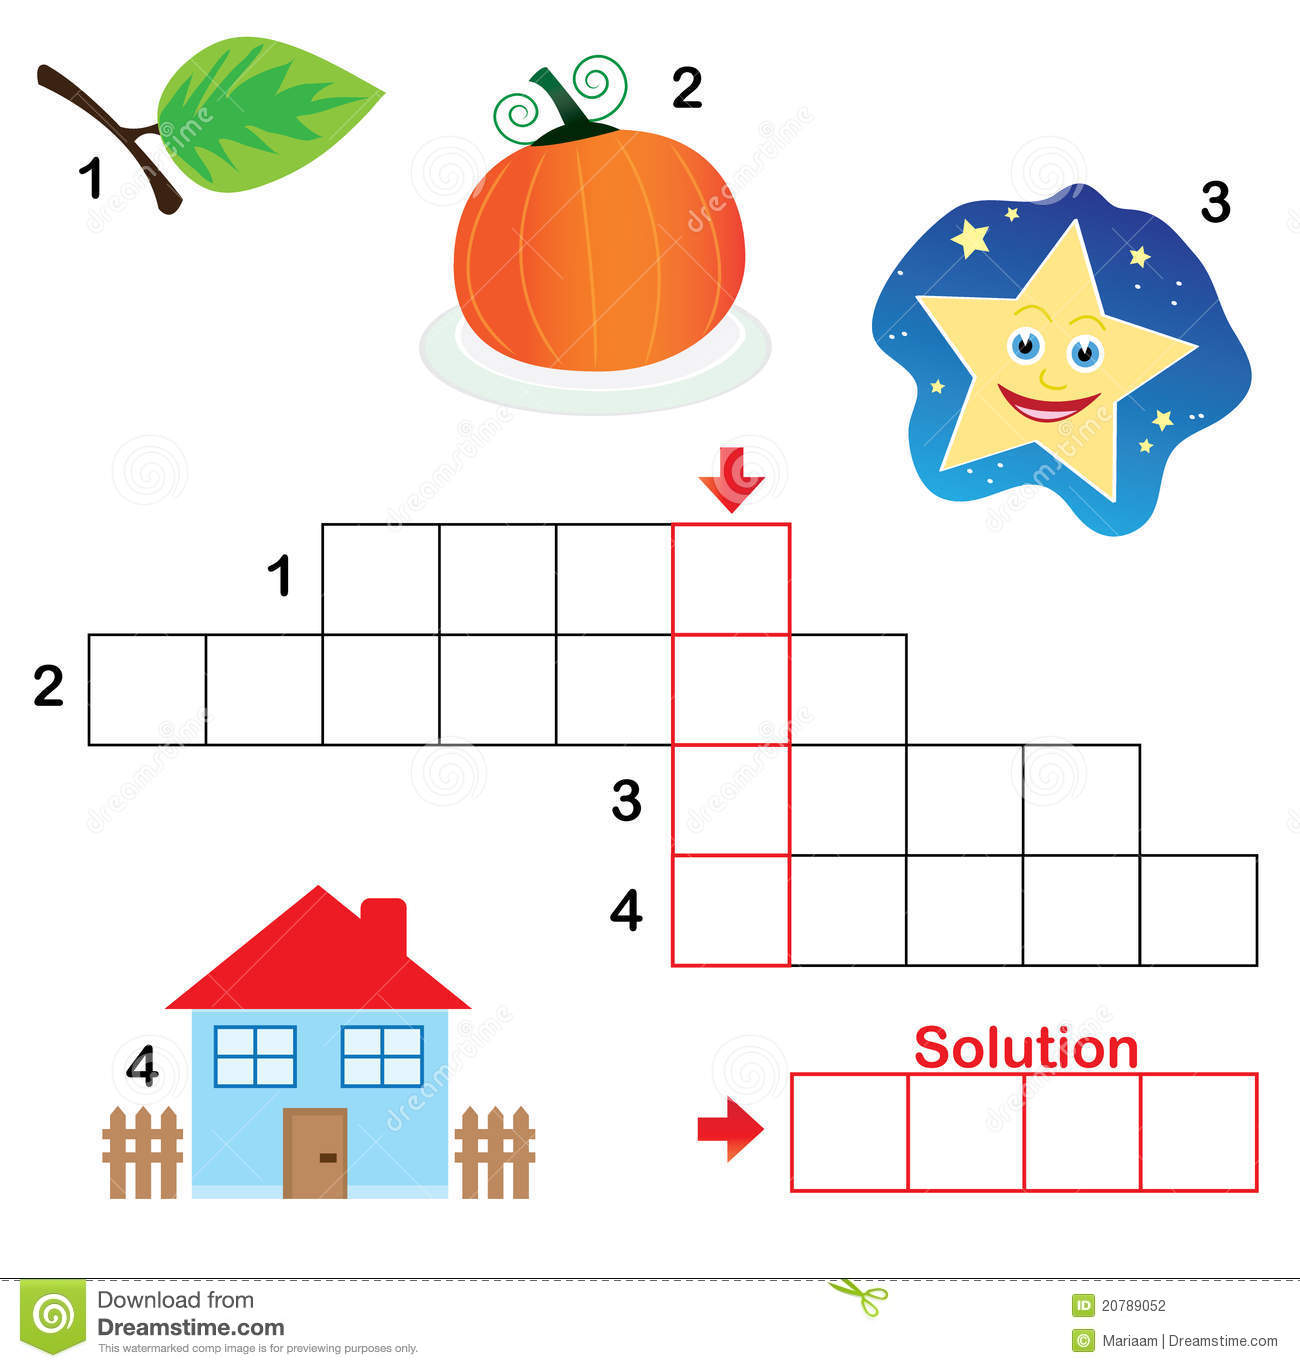 united states map puzzle for kids with Stock Photography Crossword Puzzle Children Part 3 Image20789052 on Stock Illustration Rooster Animal Cartoon Illustration Children Colorful Vector Image60975657 also Stock Illustration Put All Together Puzzle Pieces Solve Mystery Problem Solving Seeing Full Total Picture Image56609285 also Printable Word Search Puzzles likewise B000GKAU1I additionally 2.